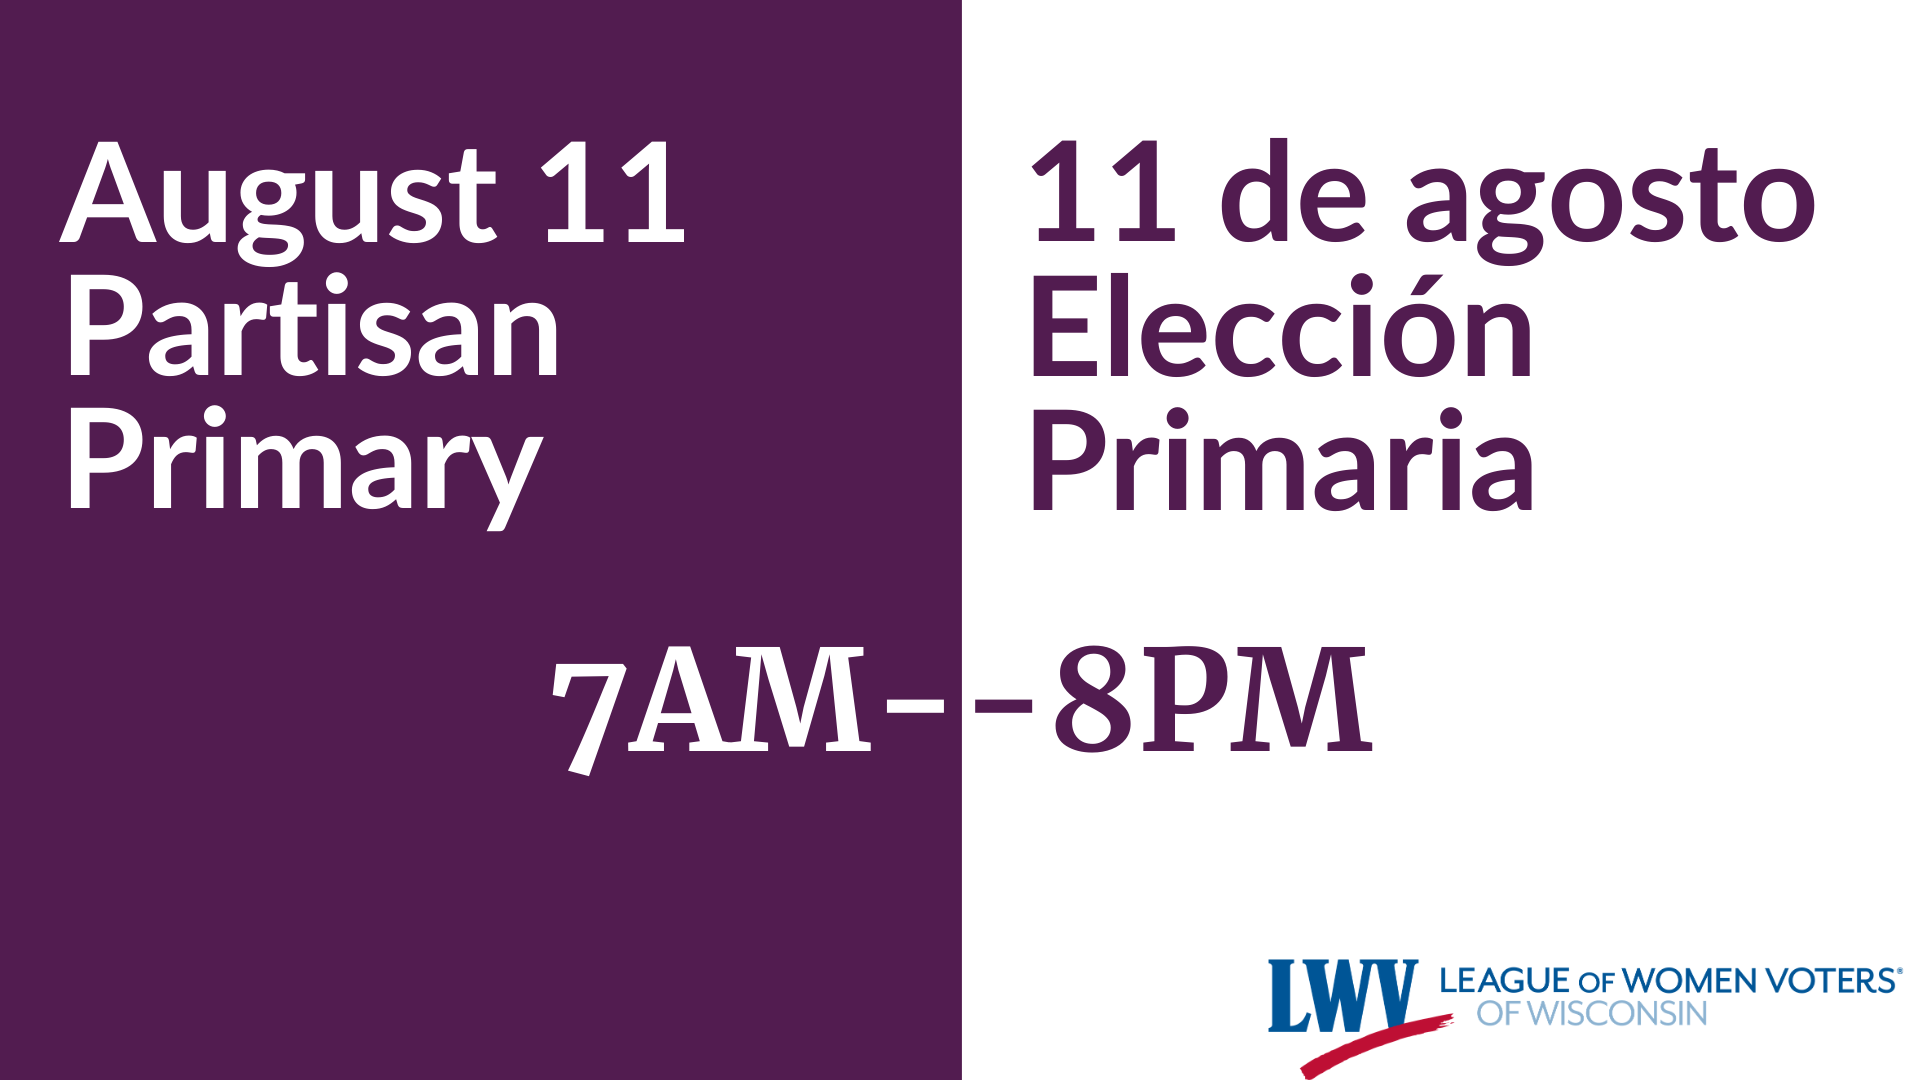 """Graphic with text, """"August 11 Partisan Primary"""" and """"11 de agosto Elección Primaria"""" and """"7am-8pm"""""""